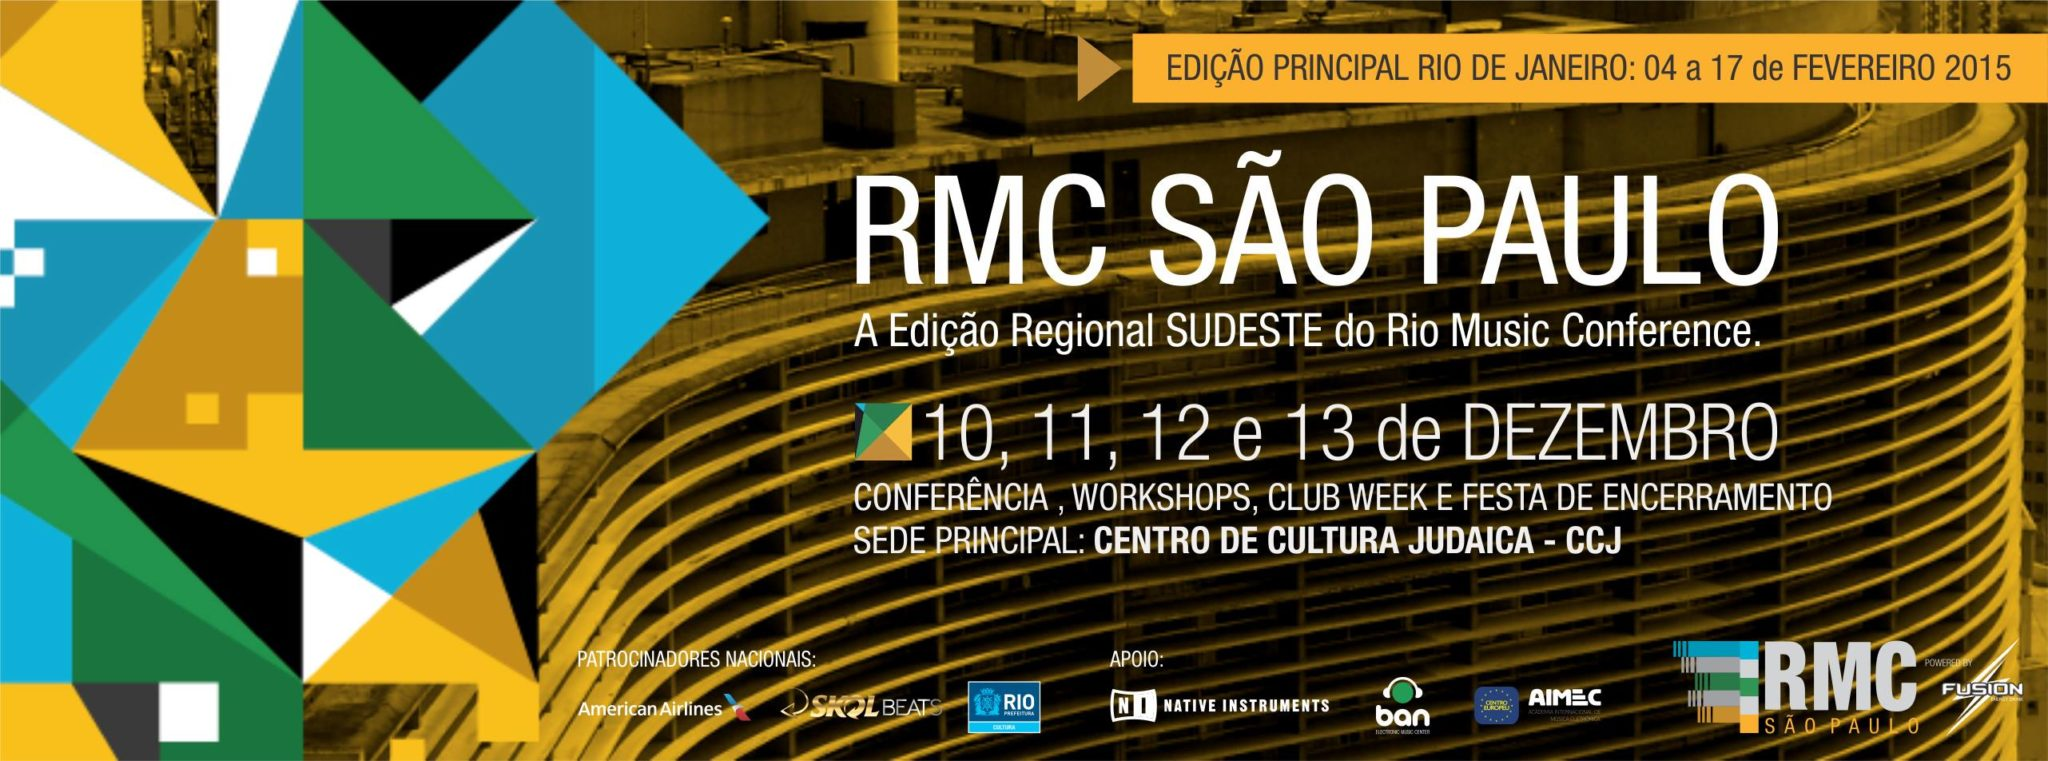 Will DB apresenta 2 workshops da Native Instruments no RMC – São Paulo, dias 12 e 13.12 DJBan - EMC, Maschine studio, native instruments, quanta music, rio music conference, RMC - São Paulo, Traktor, will db, workshop